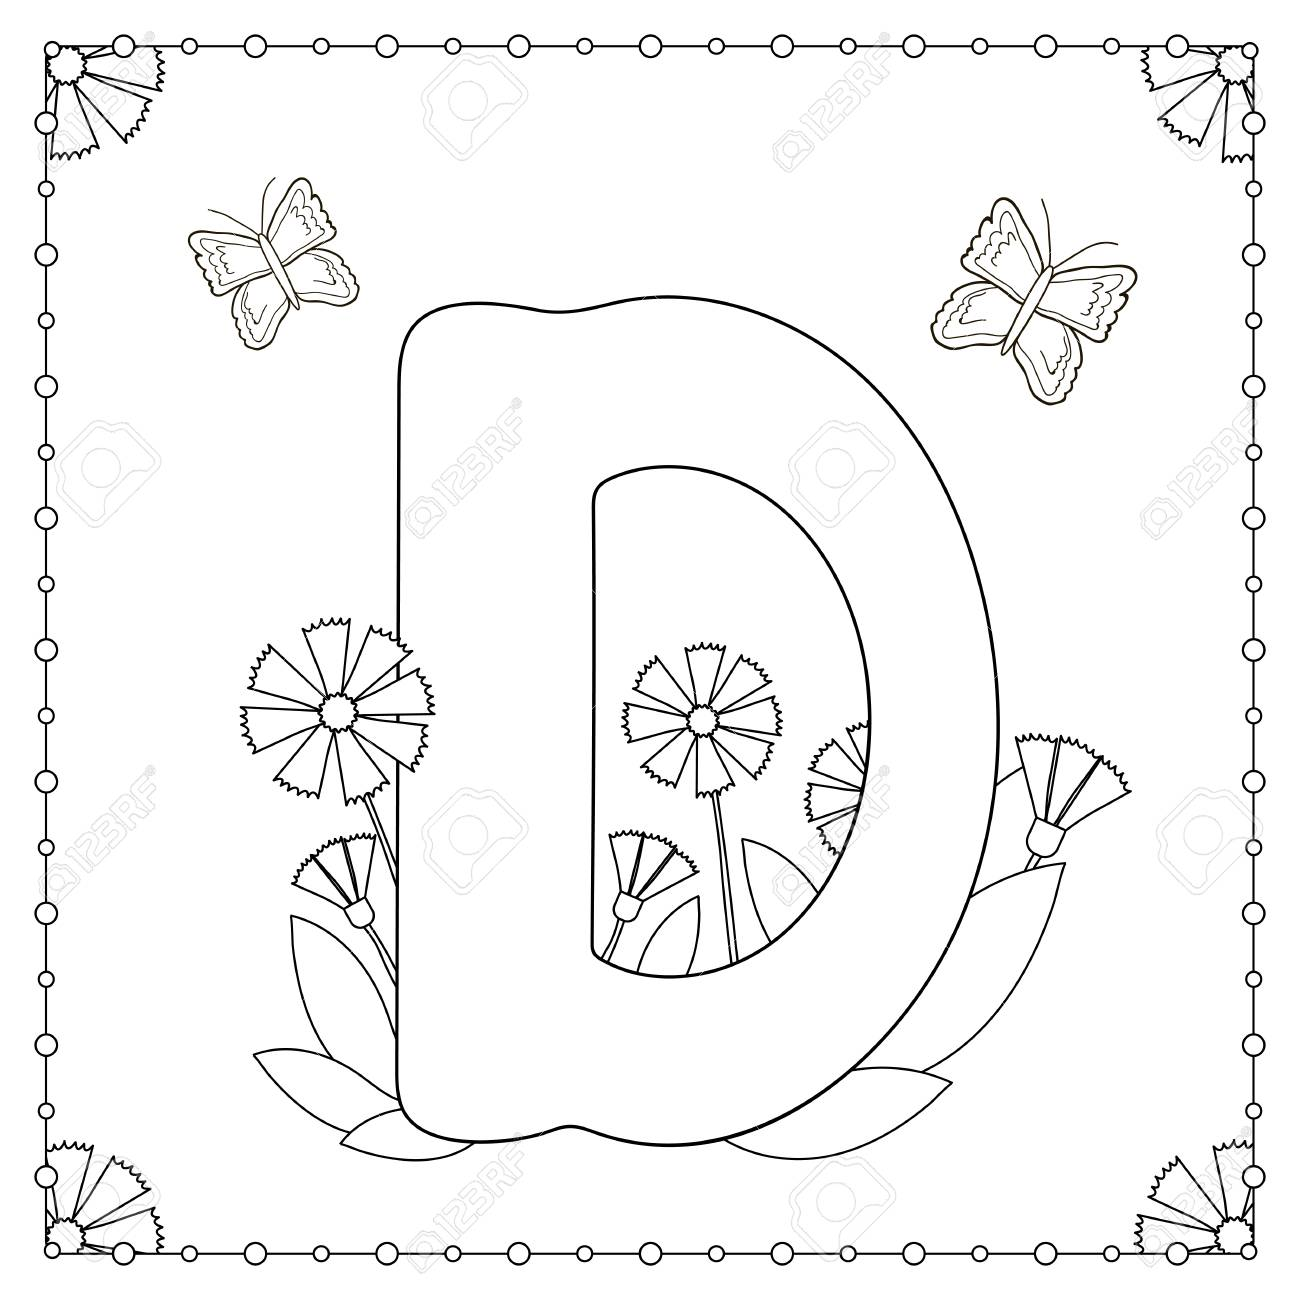 alphabet coloring page capital letter d with flowers leaves and butterflies vector illustration